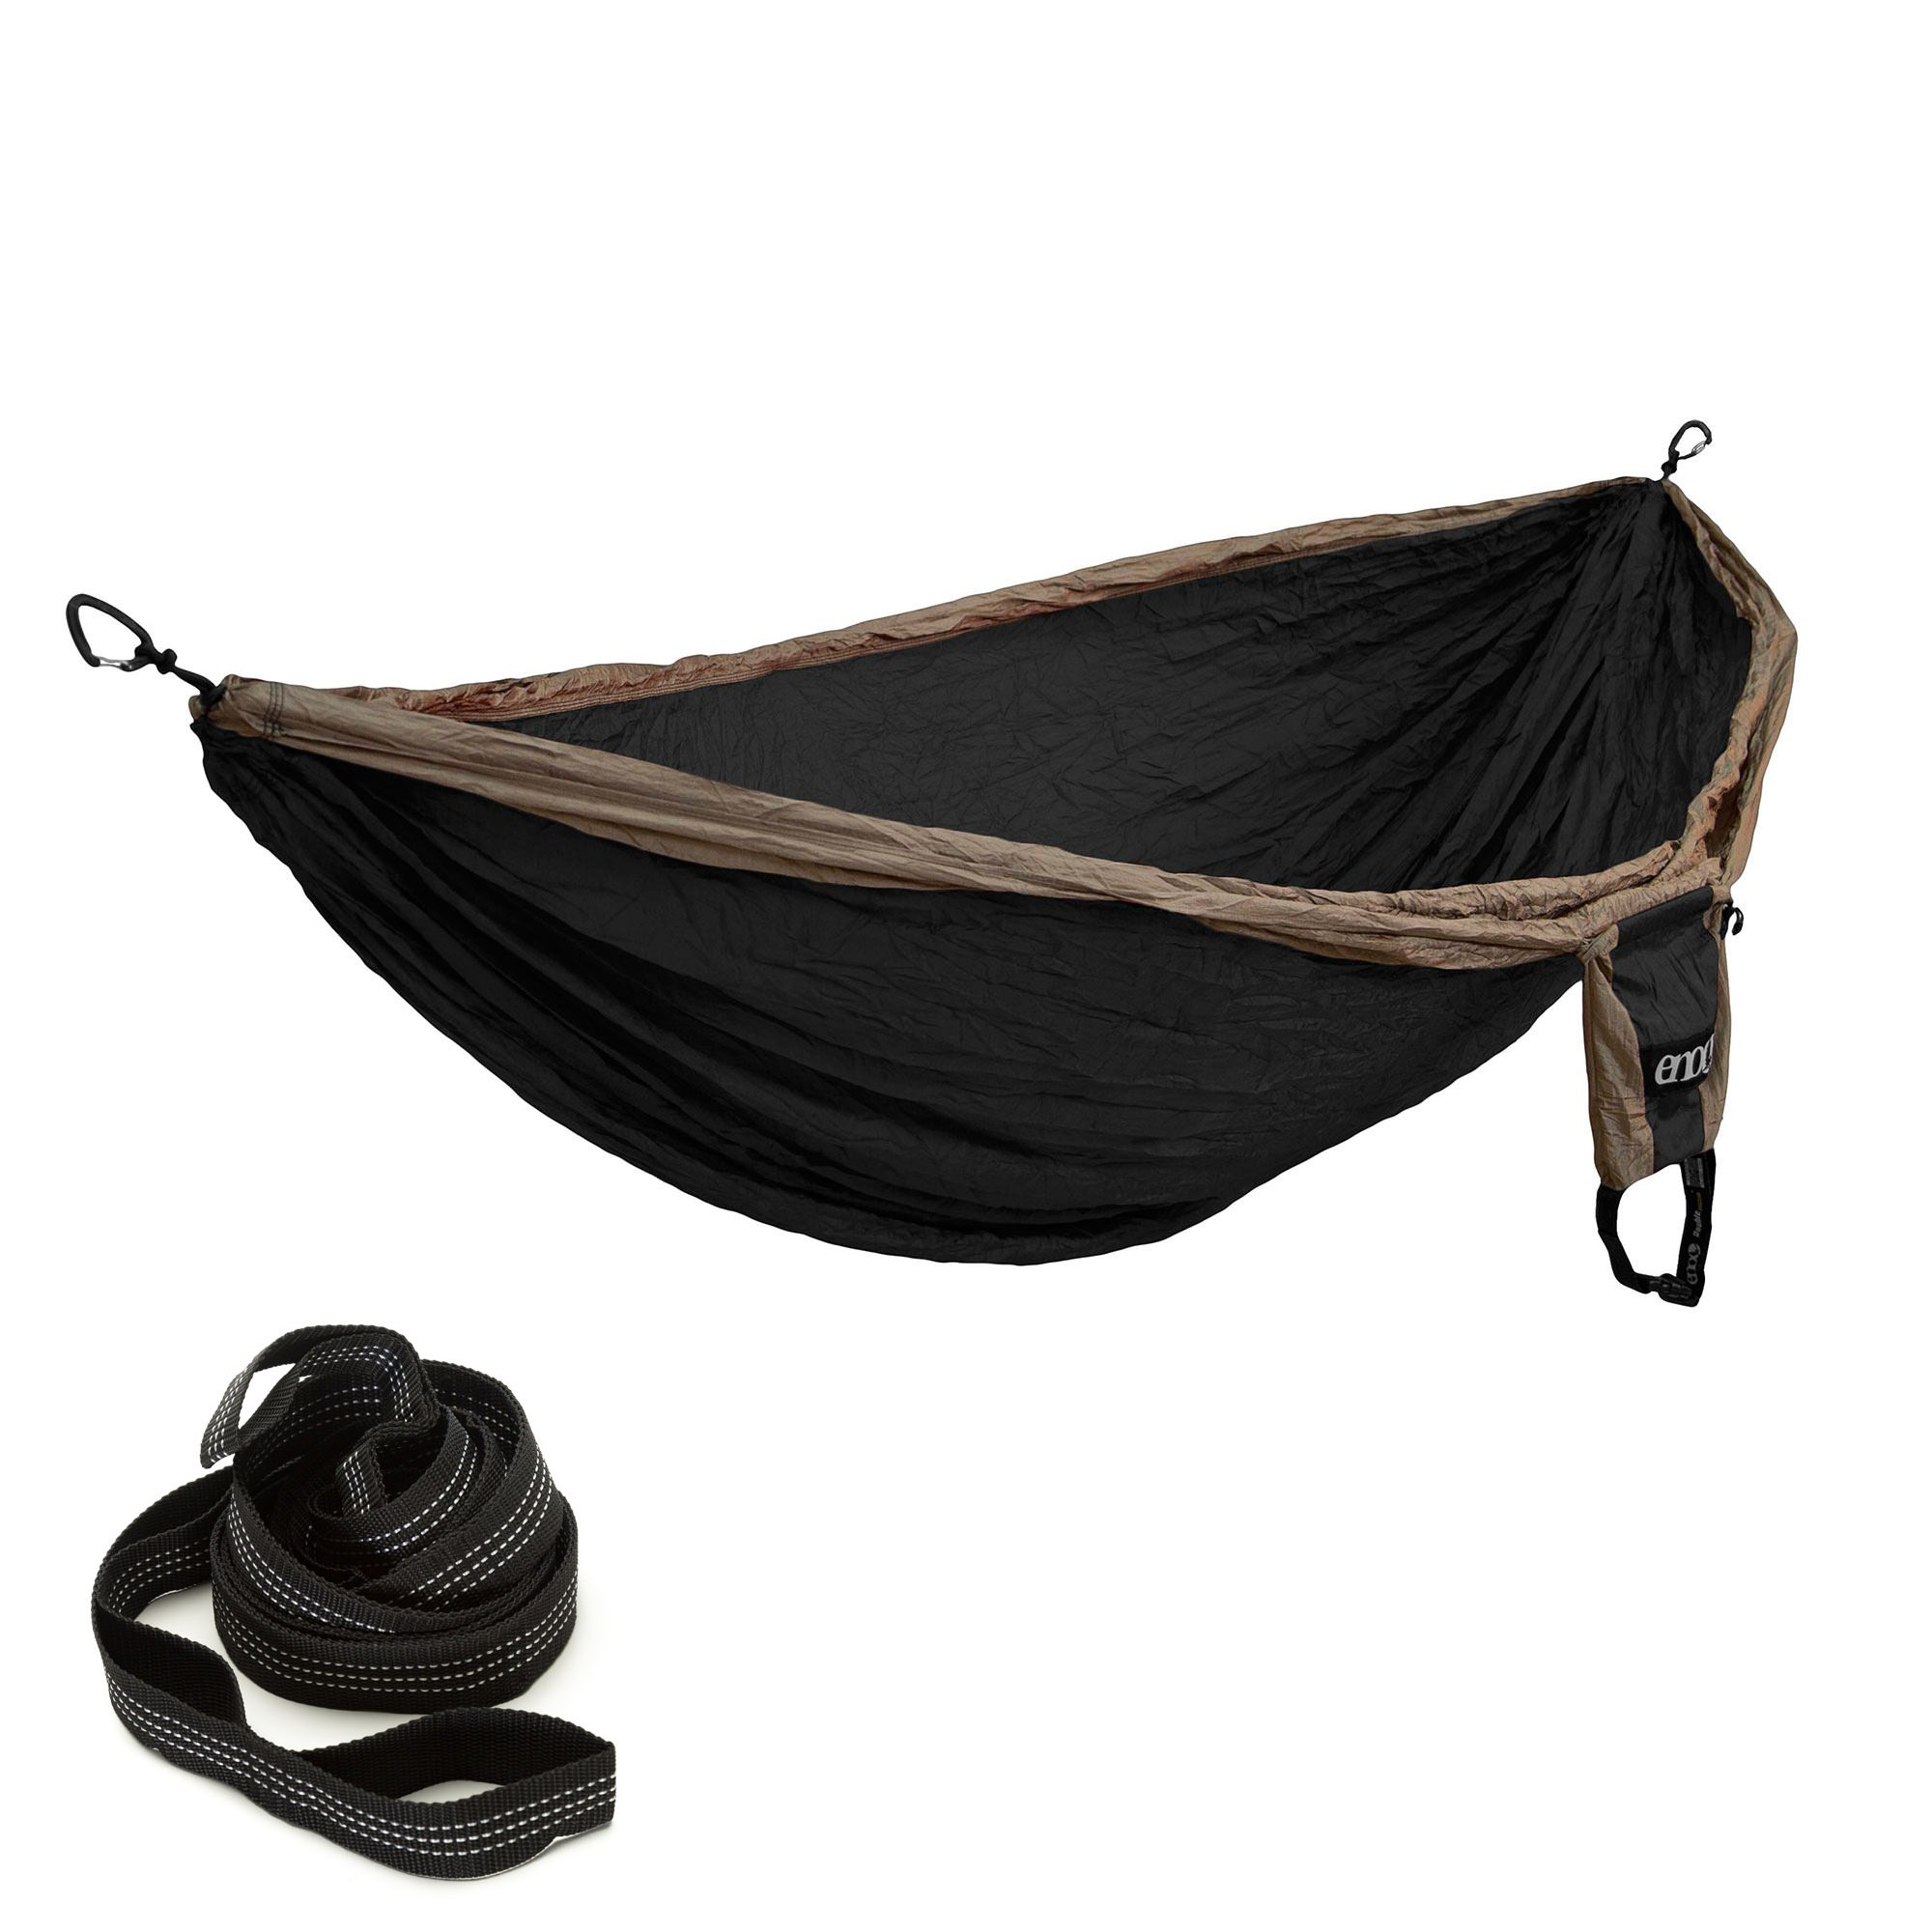 Eno Double Deluxe Camping Hammock And Straps Combo